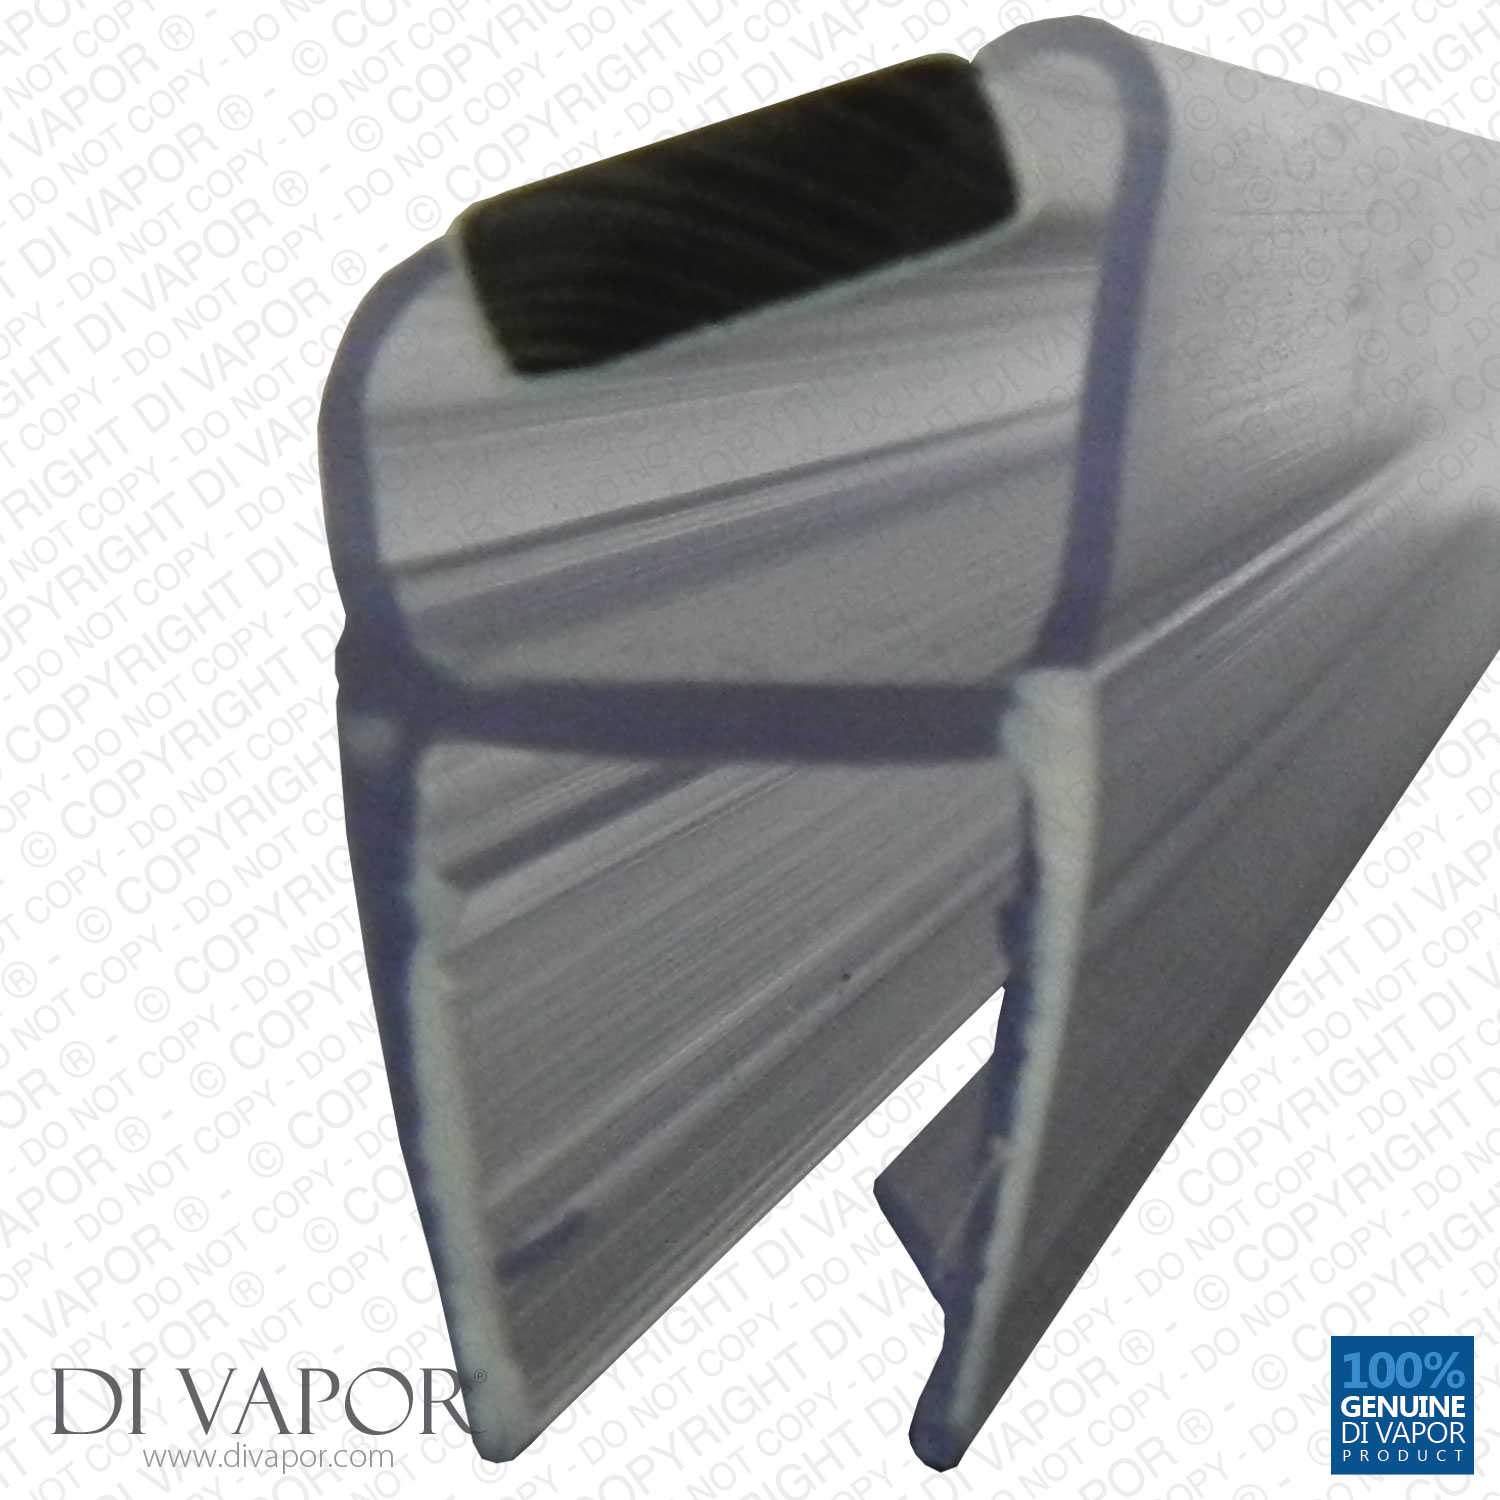 Di Vapor R Shower Door Magnetic Seal Replacement 4 6mm